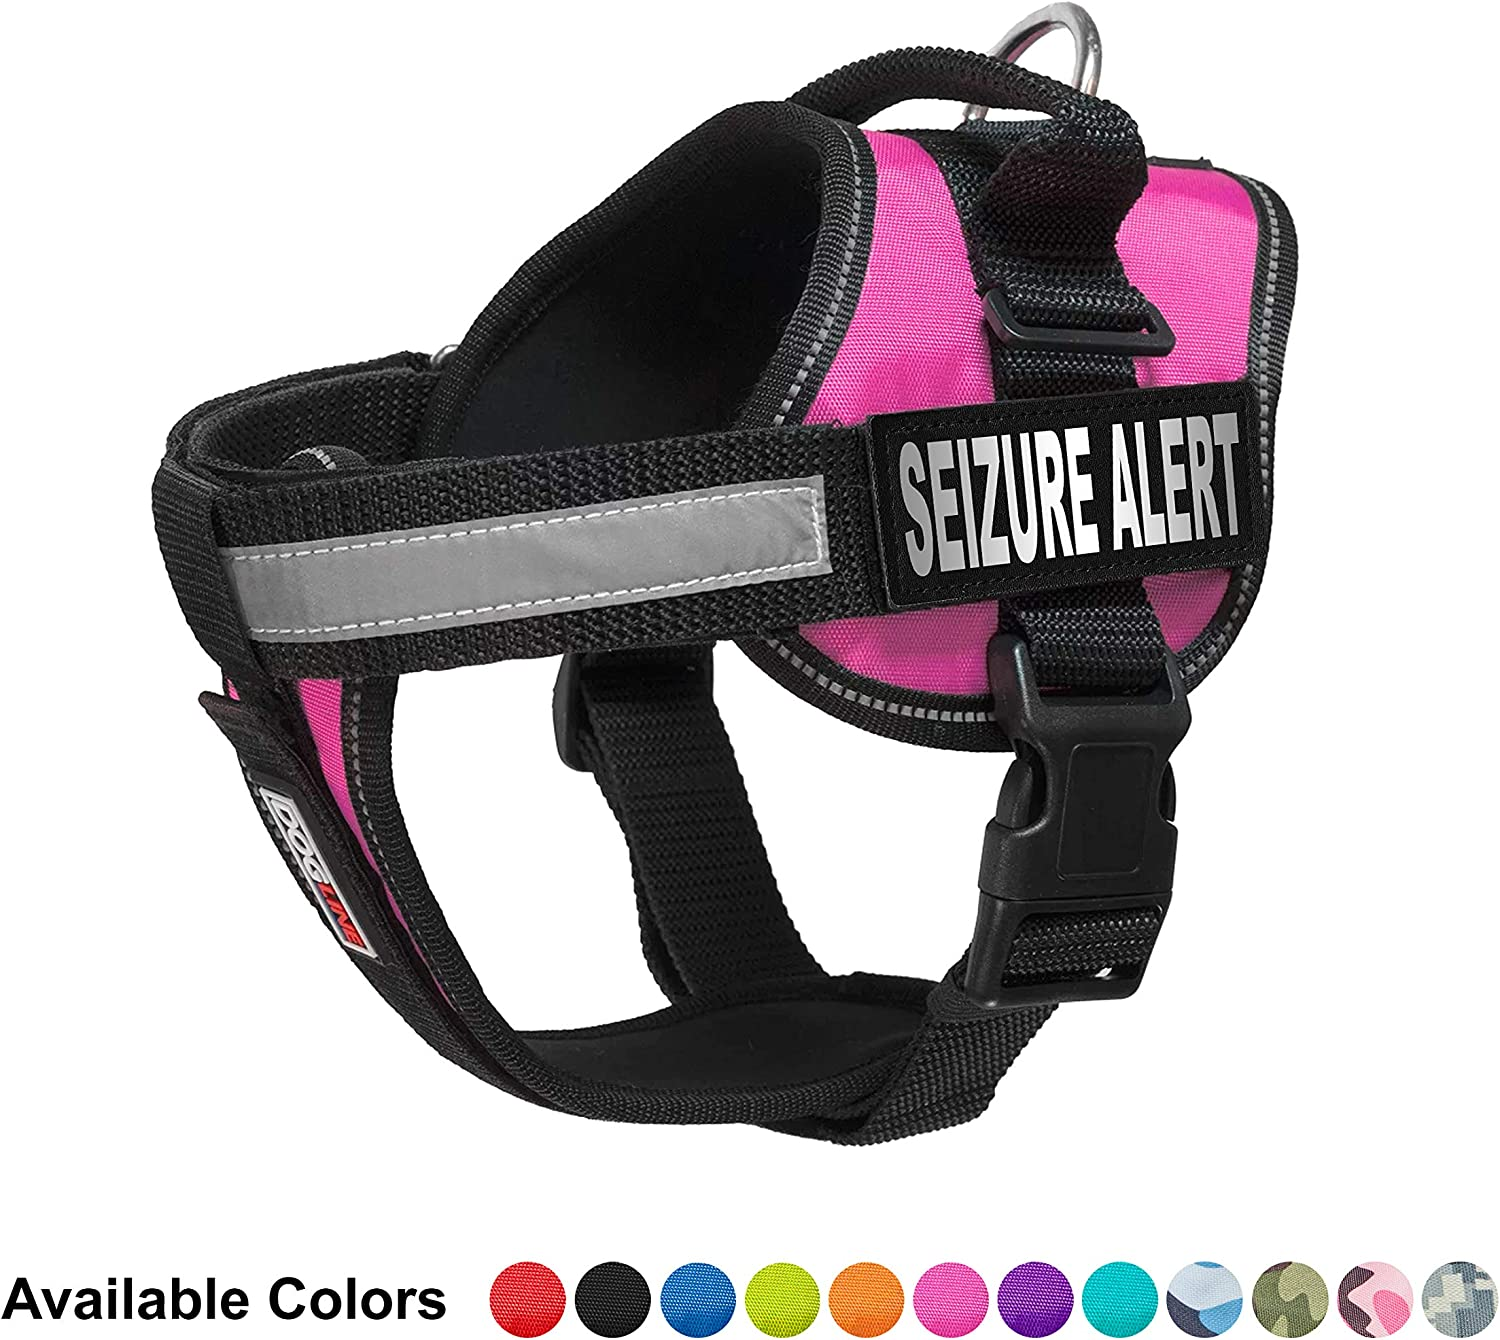 Dogline Unimax MultiPurpose Vest Harness for Dogs and 2 Removable Seizure Alert Patches, Medium, Pink